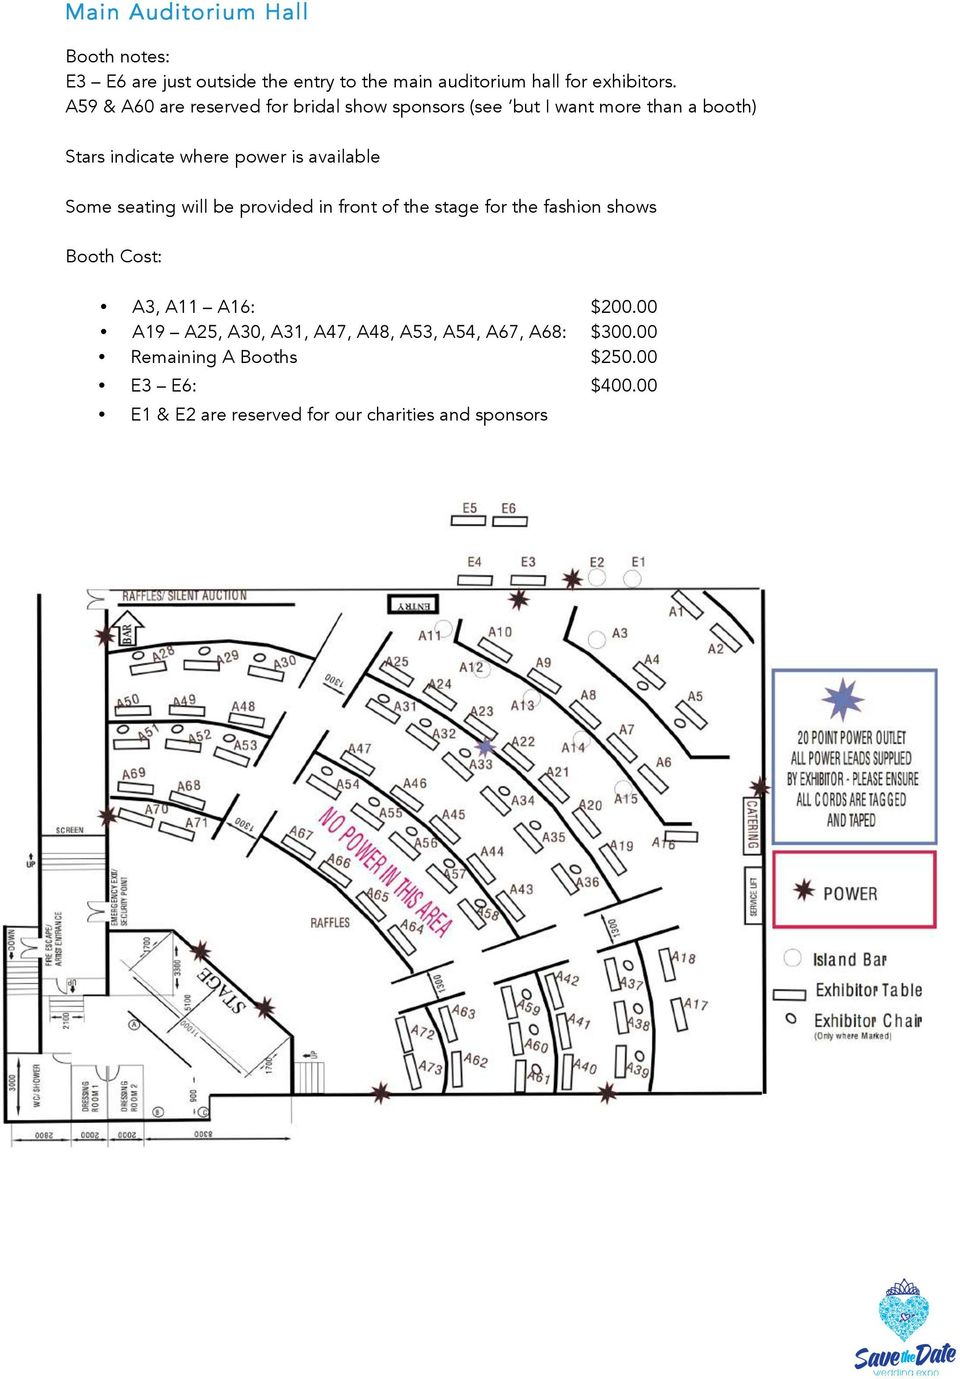 Some seating will be provided in front of the stage for the fashion shows Booth Cost: A3, A11 A16: $200.